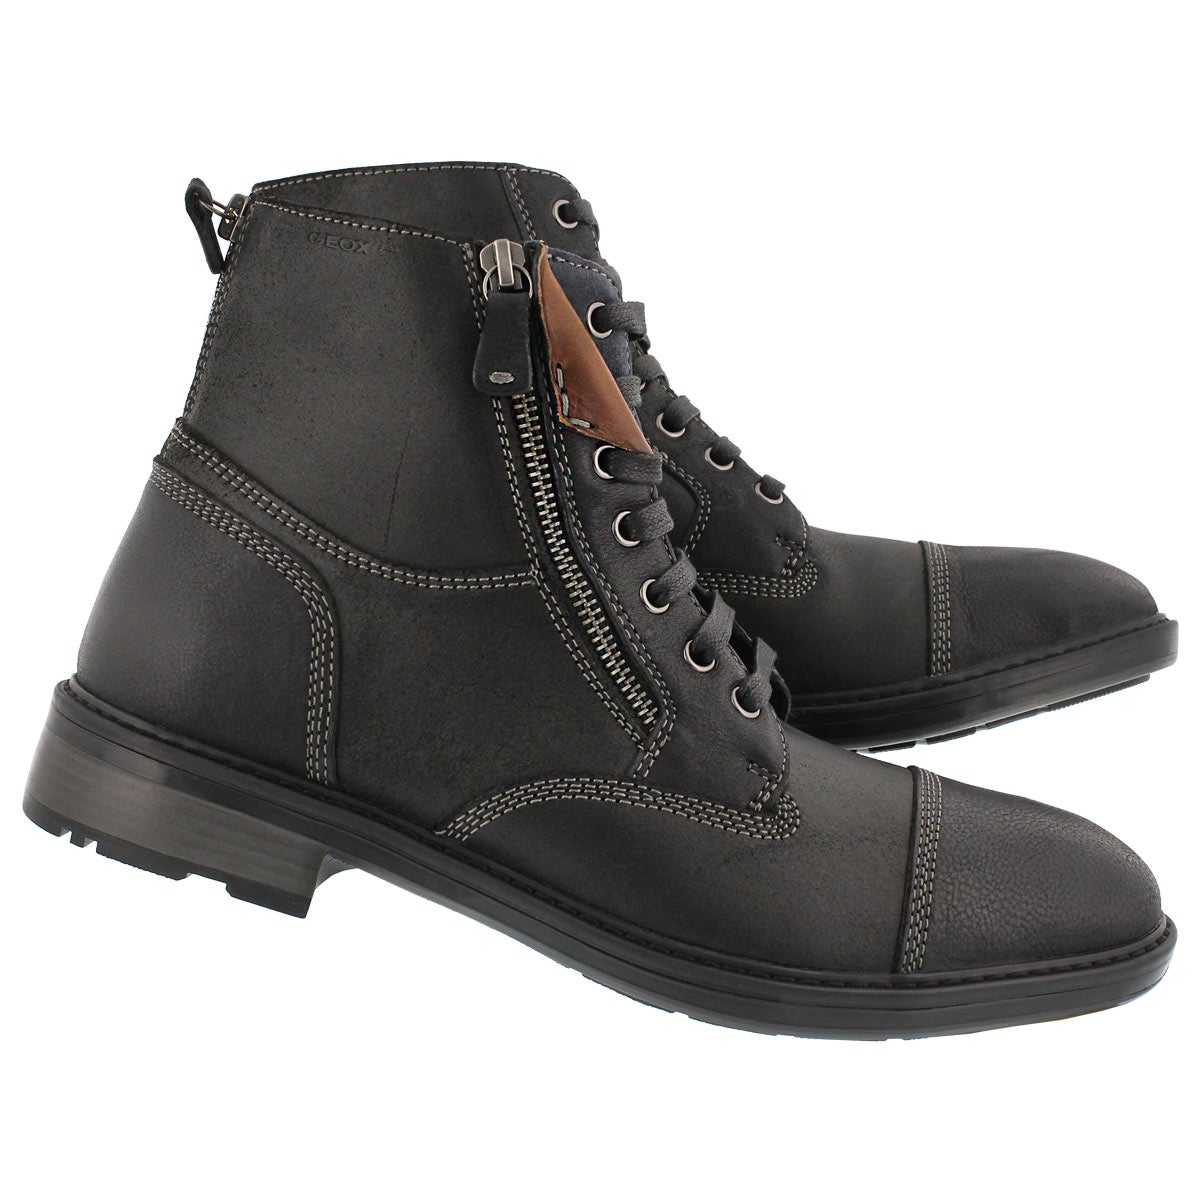 Mns Rickmove black lace up ankle boot